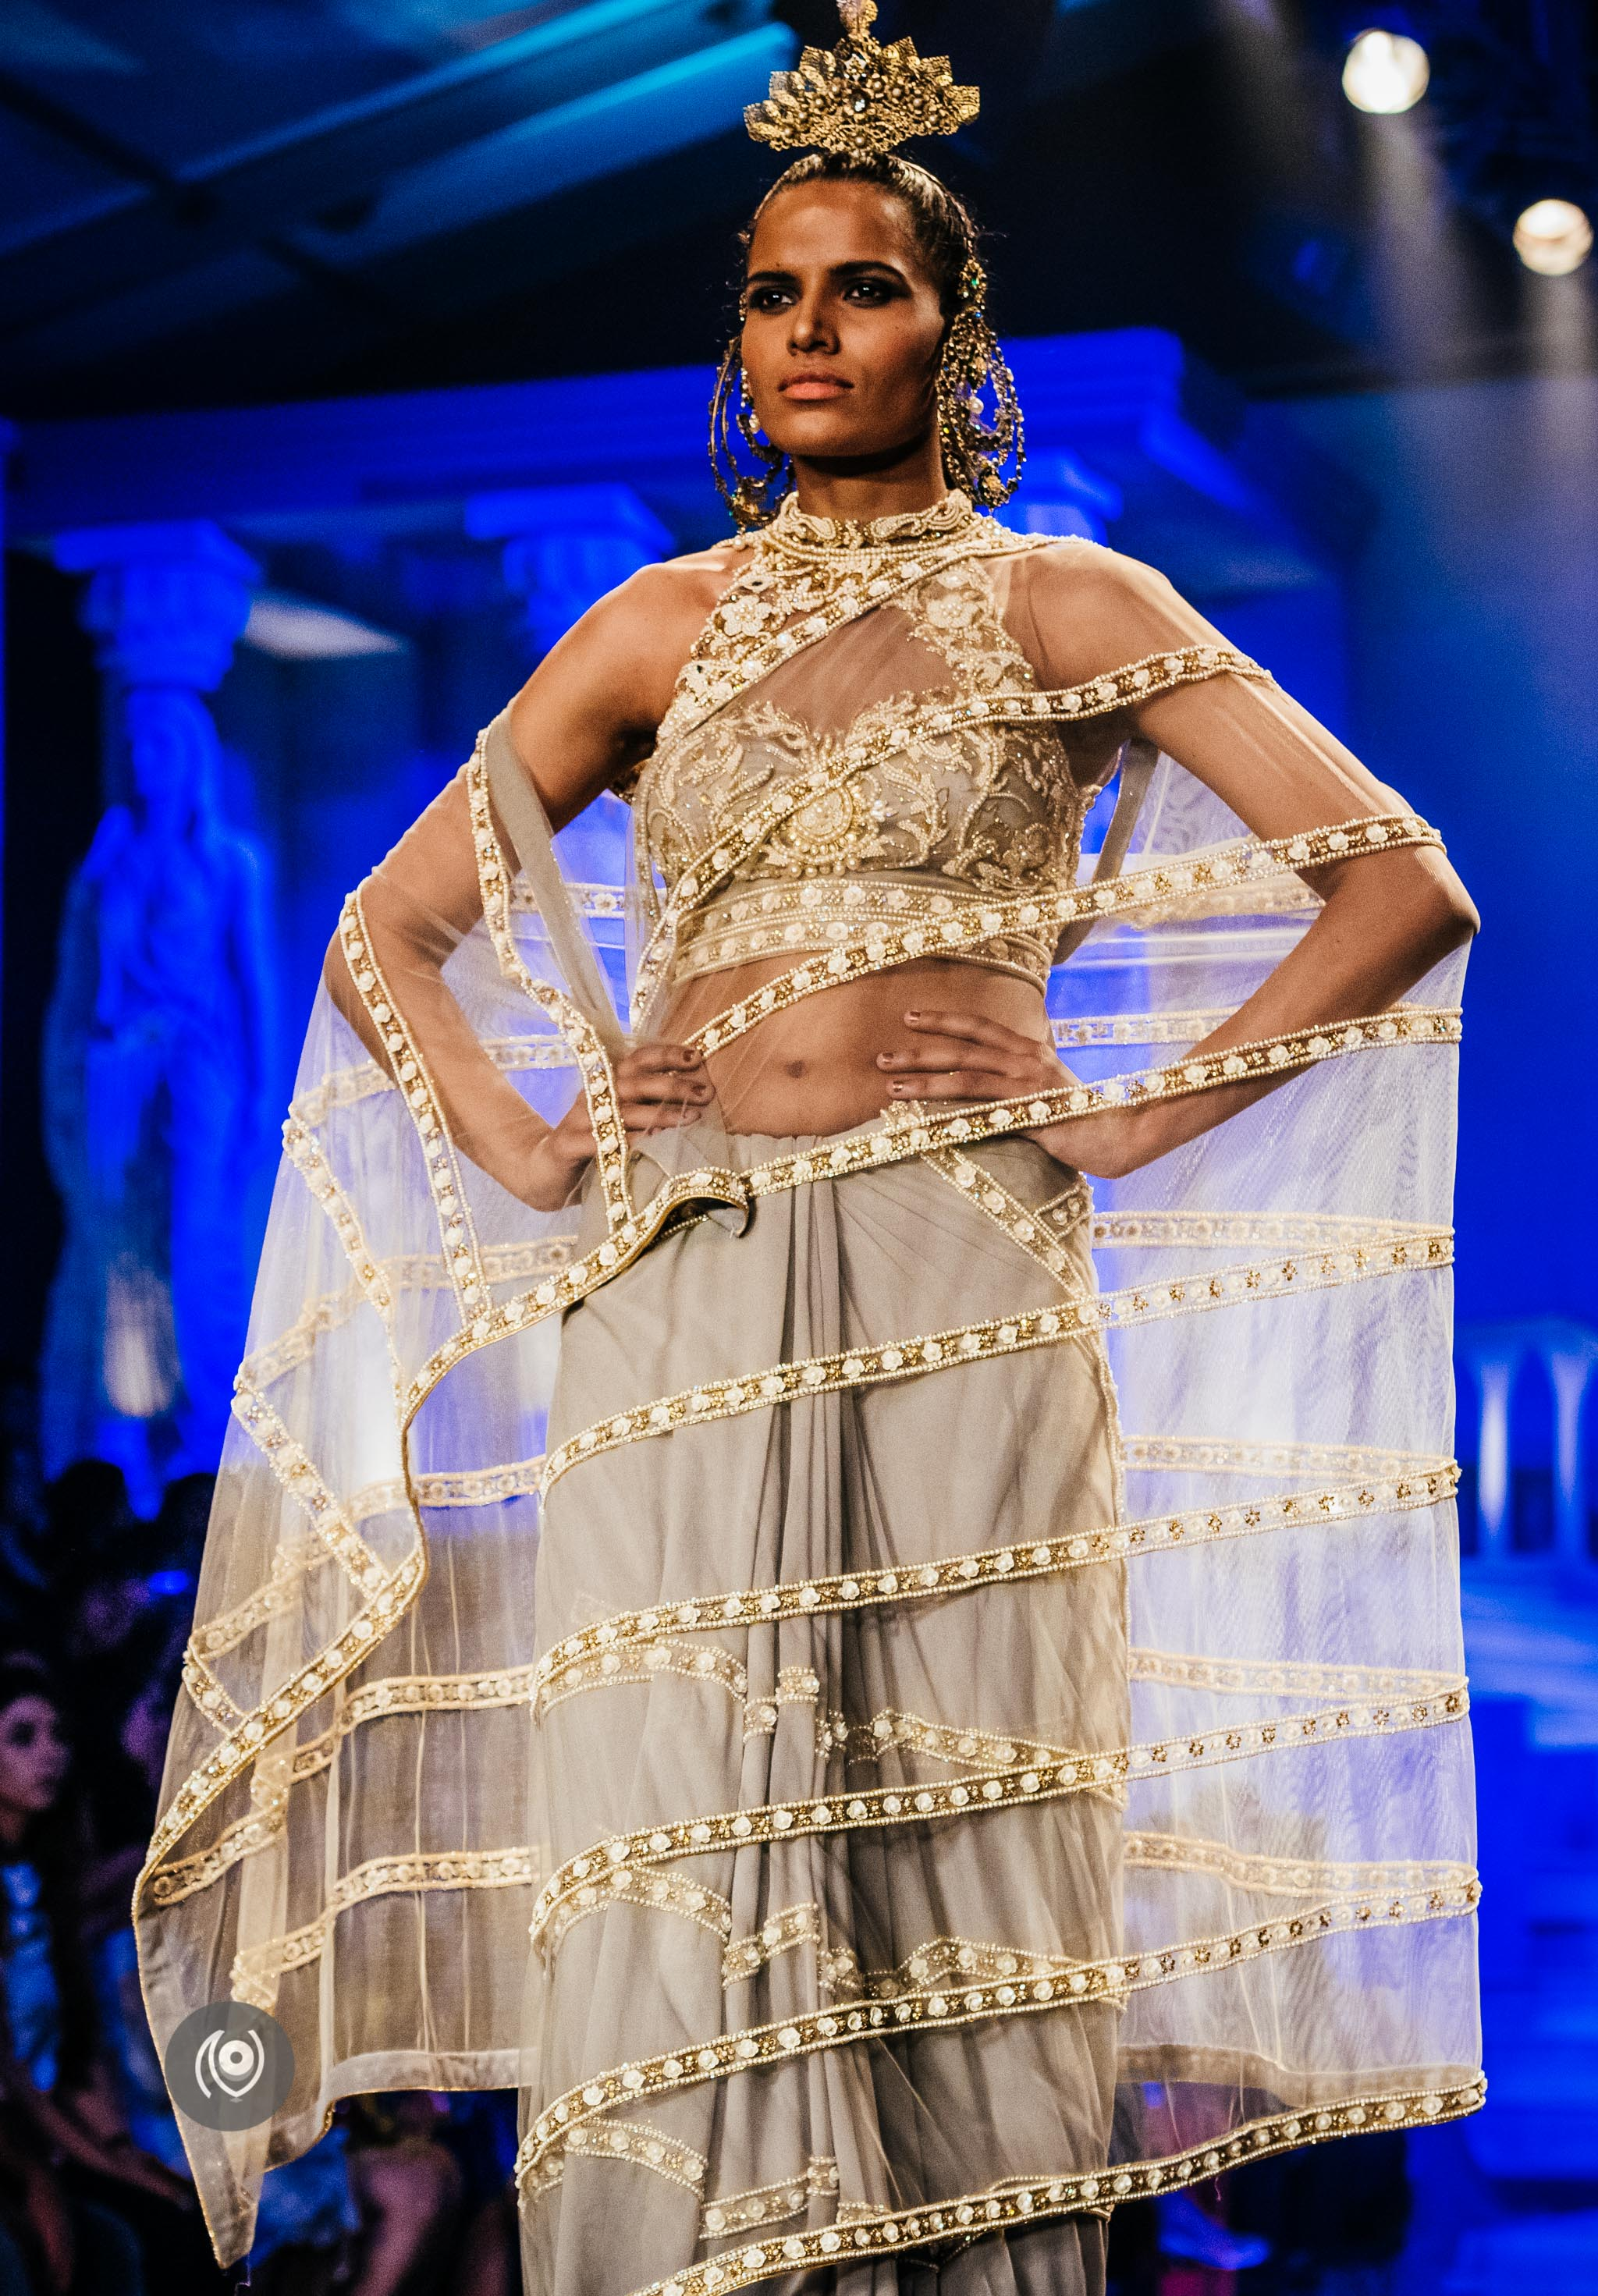 #SwarovskiCrystals Suneet Varma Grand Finale, BMW India Bridal Fashion Week, #BMWIBFW, Naina.co Luxury & Lifestyle, Photographer Storyteller, Blogger #SwarovskiCouture